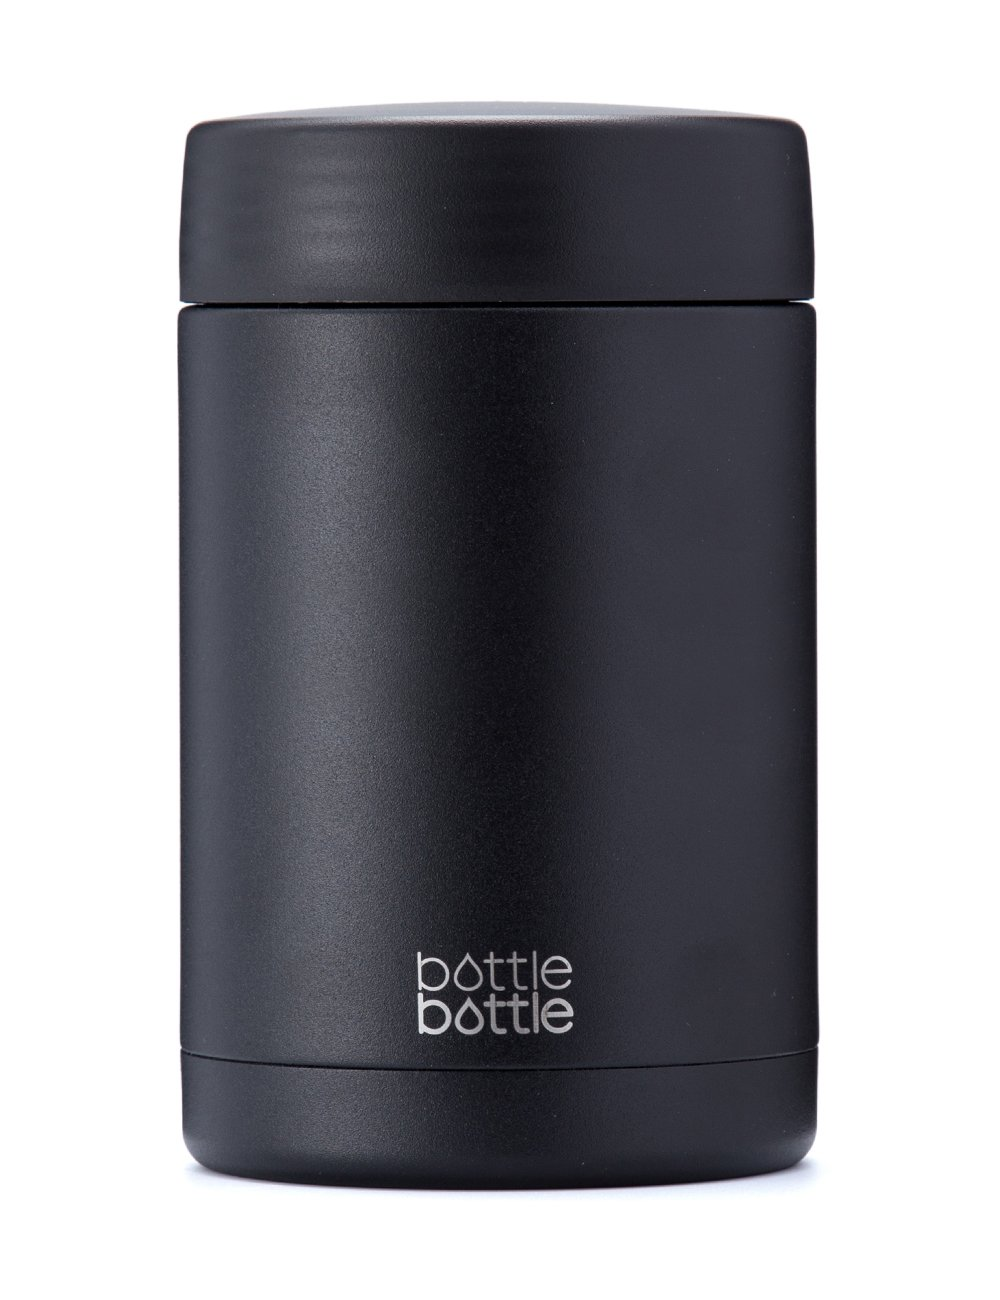 Bottlebottle Vacuum Insulated Food Jar - 500ml Double Wall Stainless Steel Thermos Jar Food Flask Storage Container, Night Black AB011-500-4